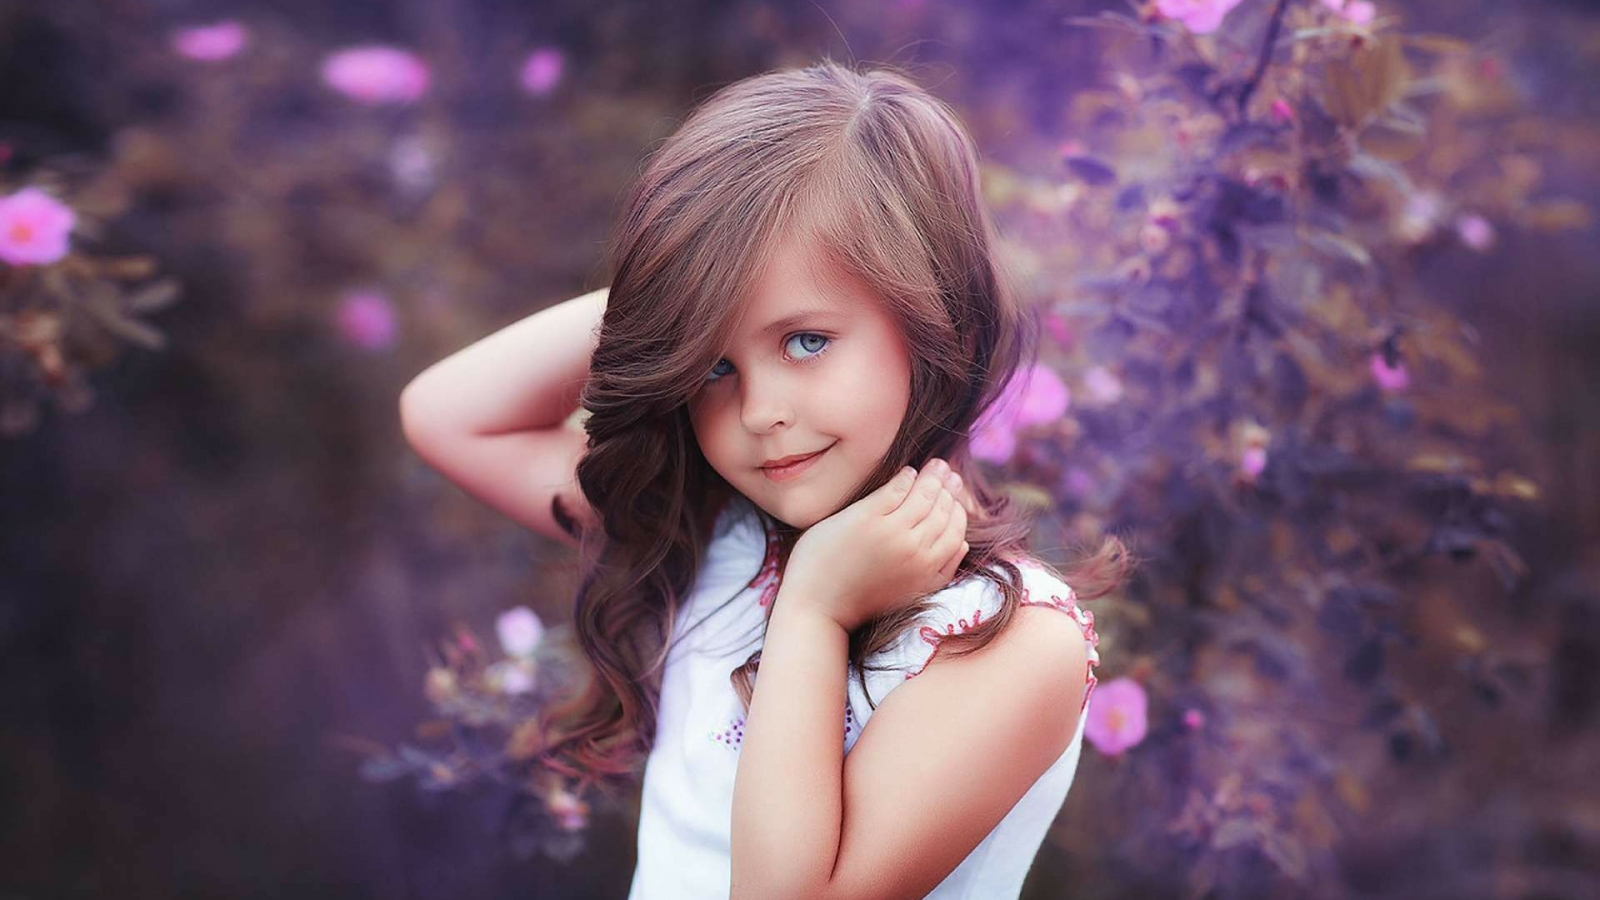 Cute Sweet Baby Girls Hd Wallpapers Download